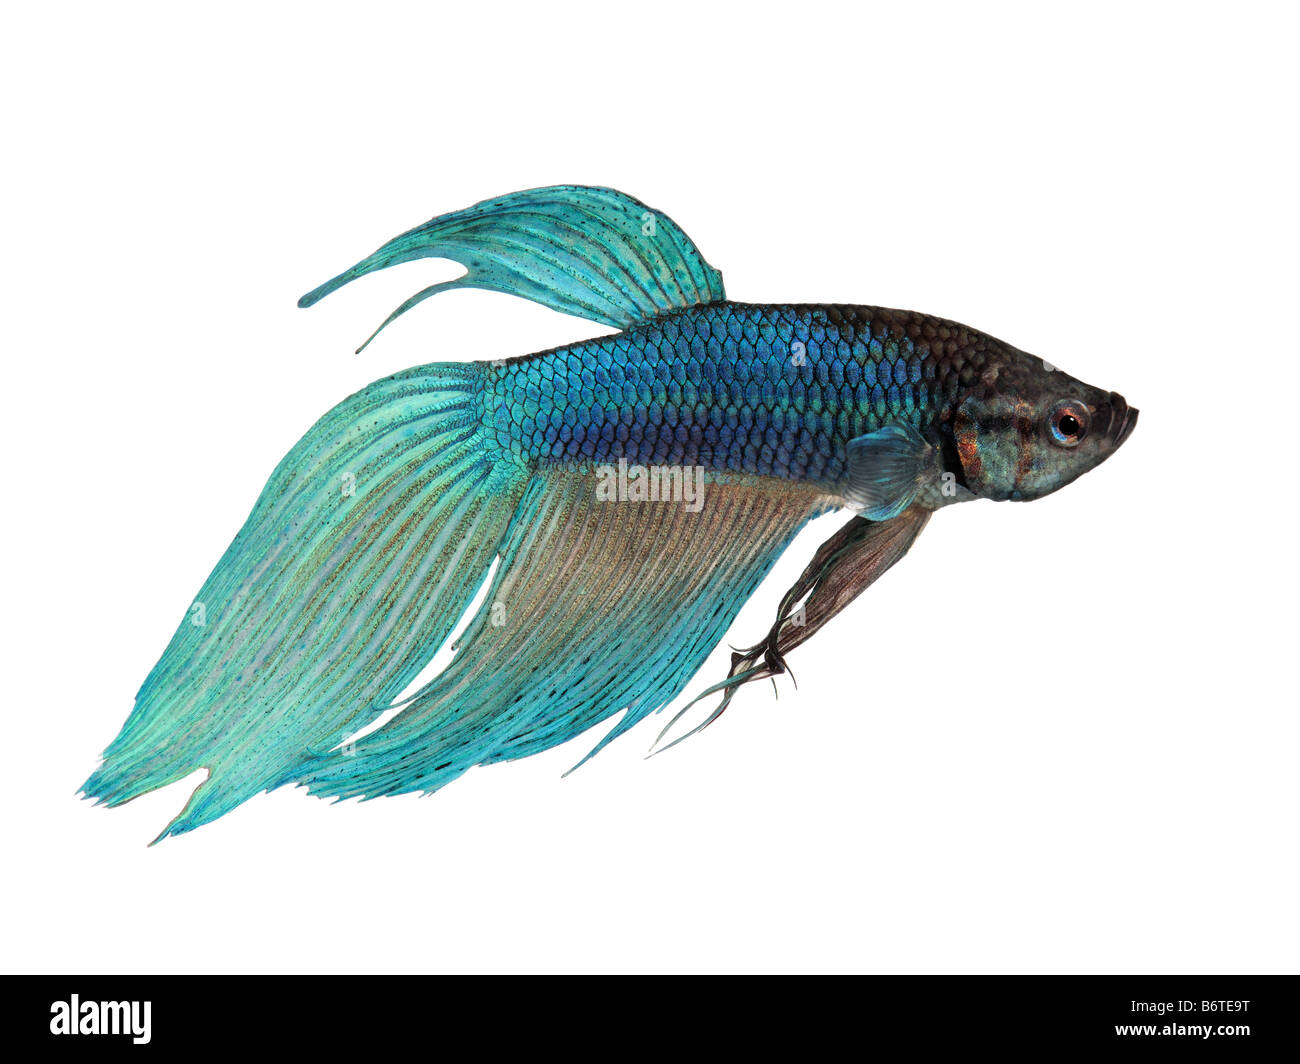 blue Siamese fighting fish Betta Splendens in front of a white background - Stock Image